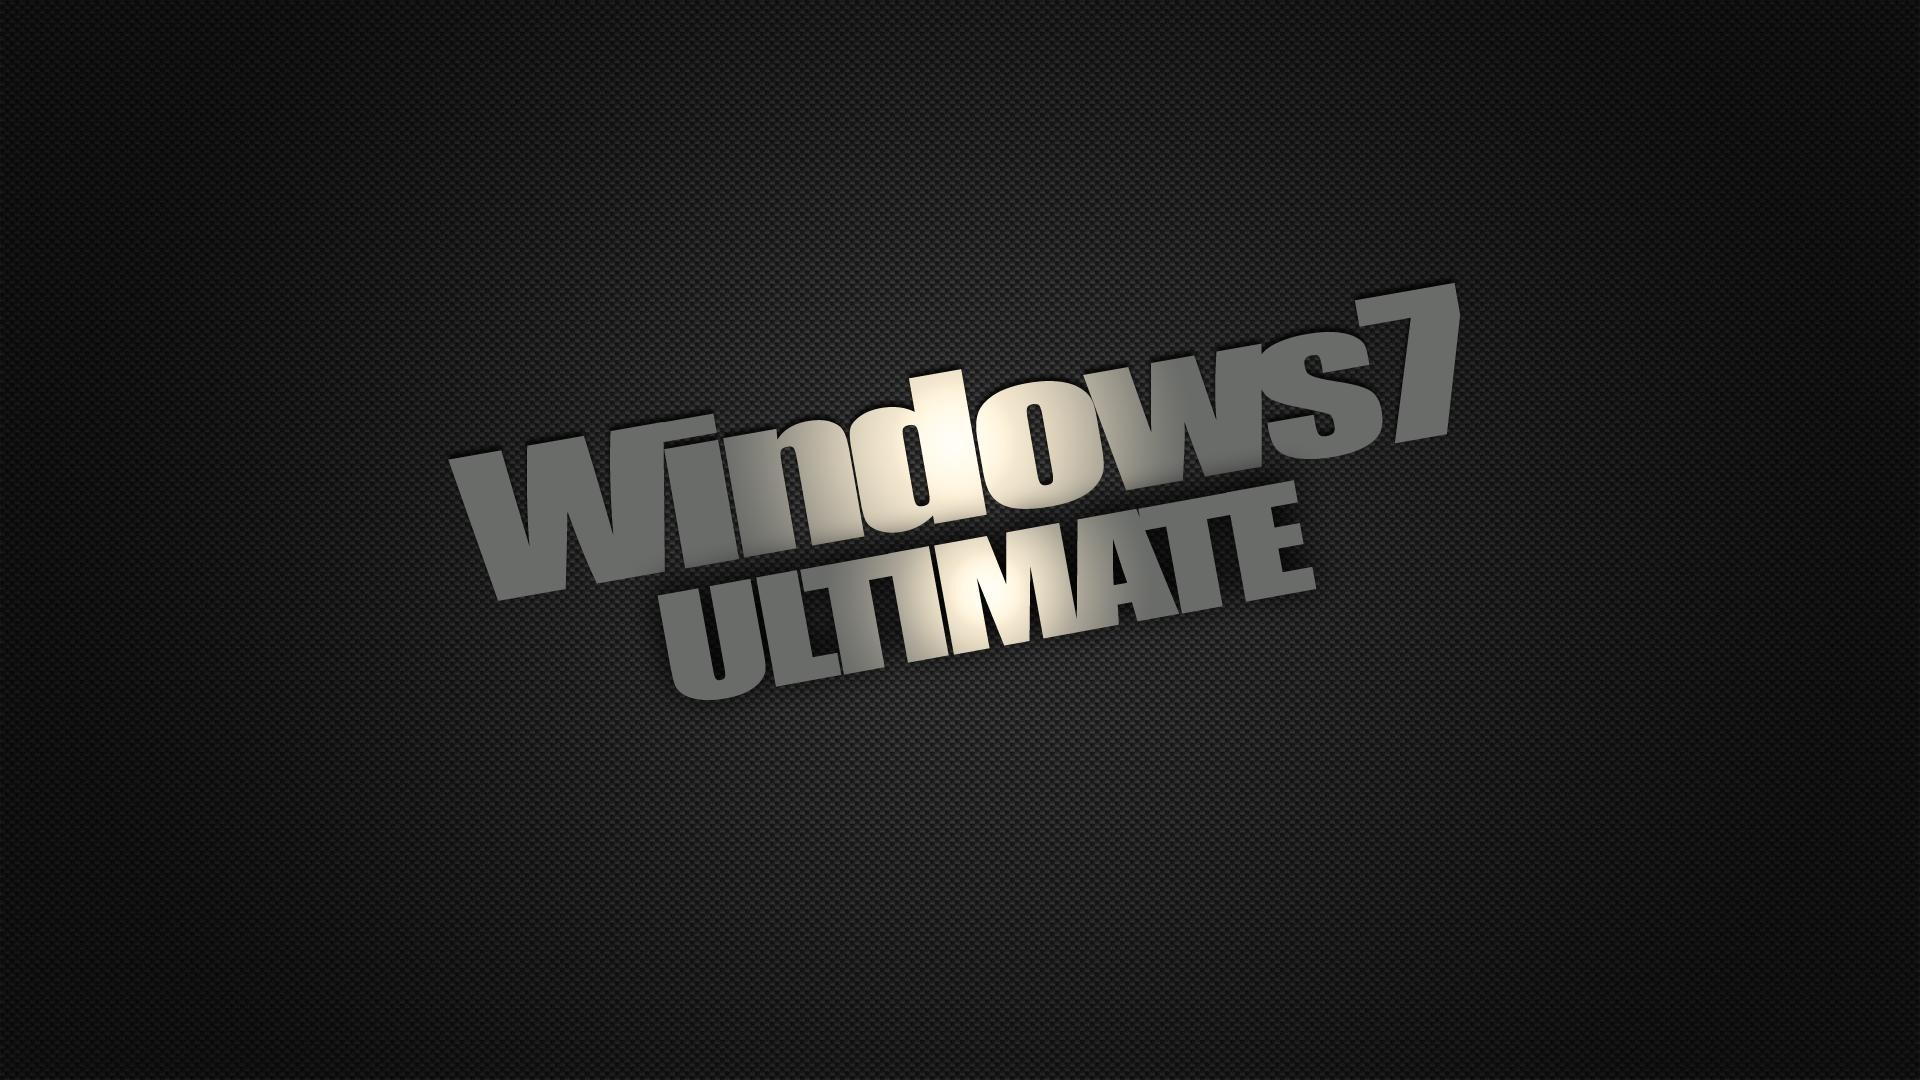 windows 7 ultimate wallpaper hd (50+ images)